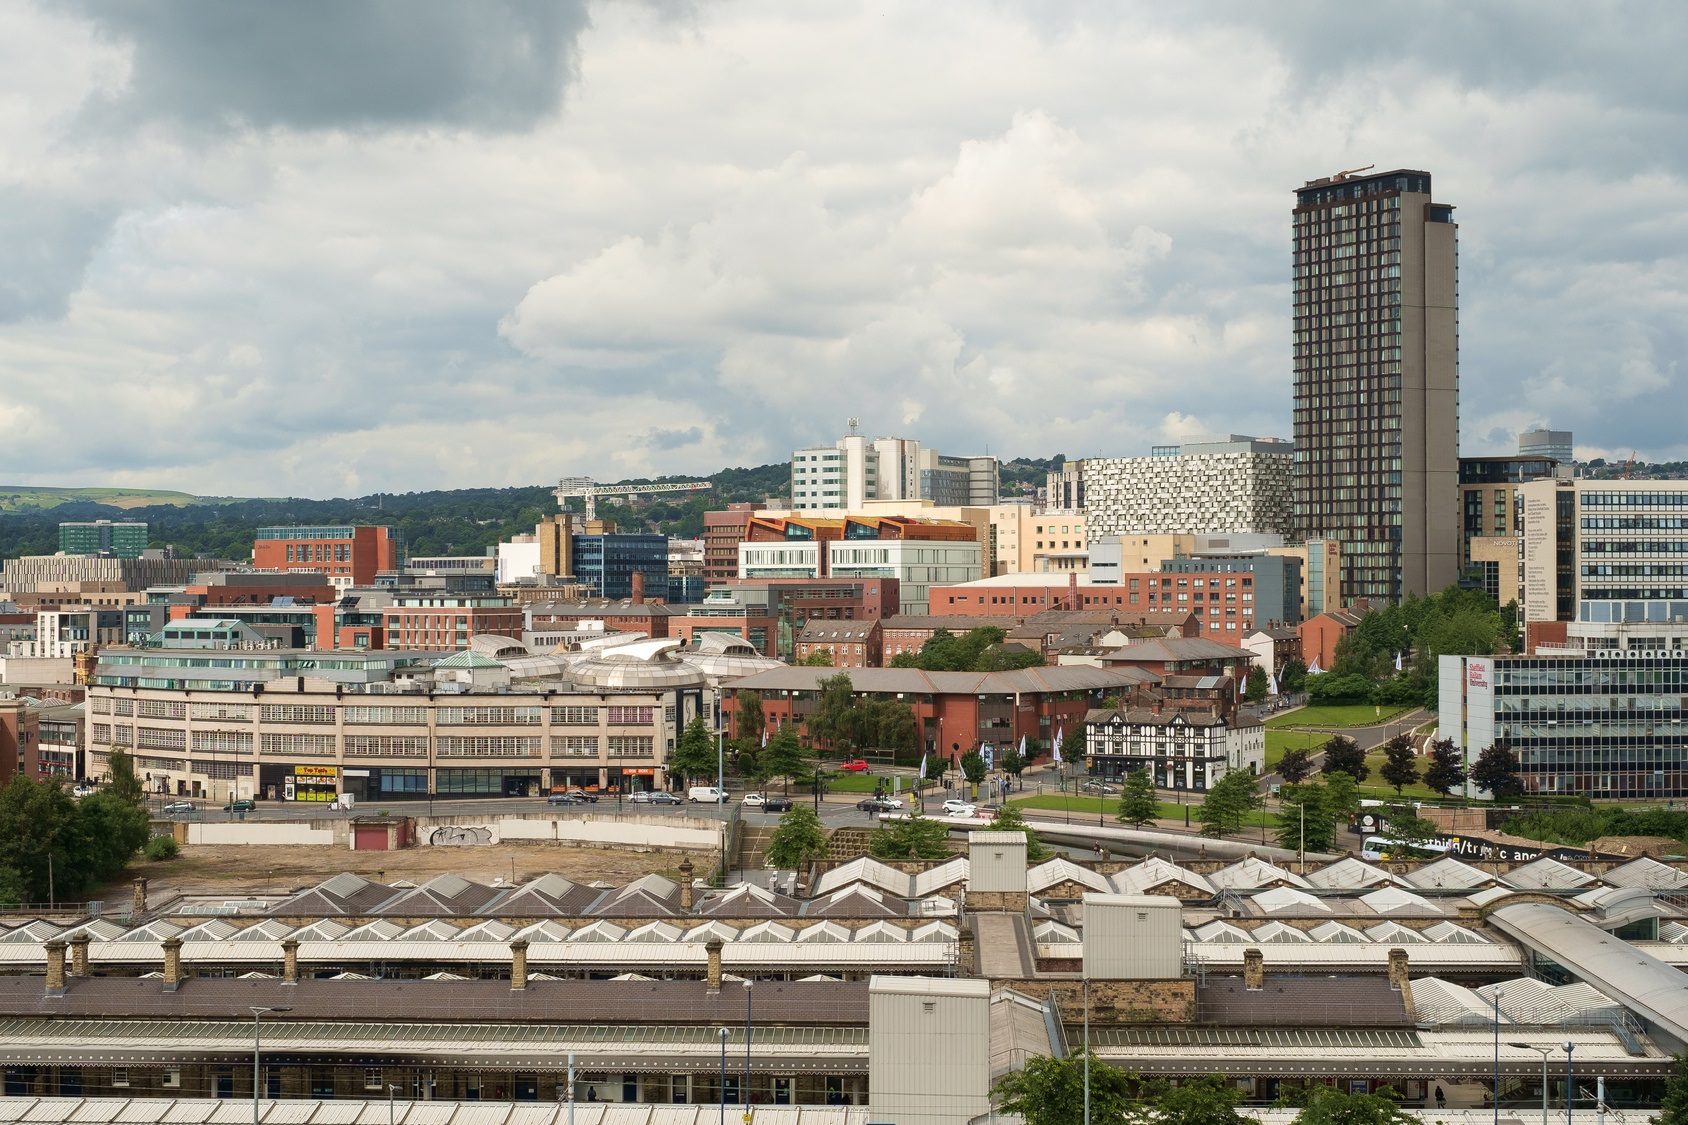 Cityscape of Sheffield with train station in foreground